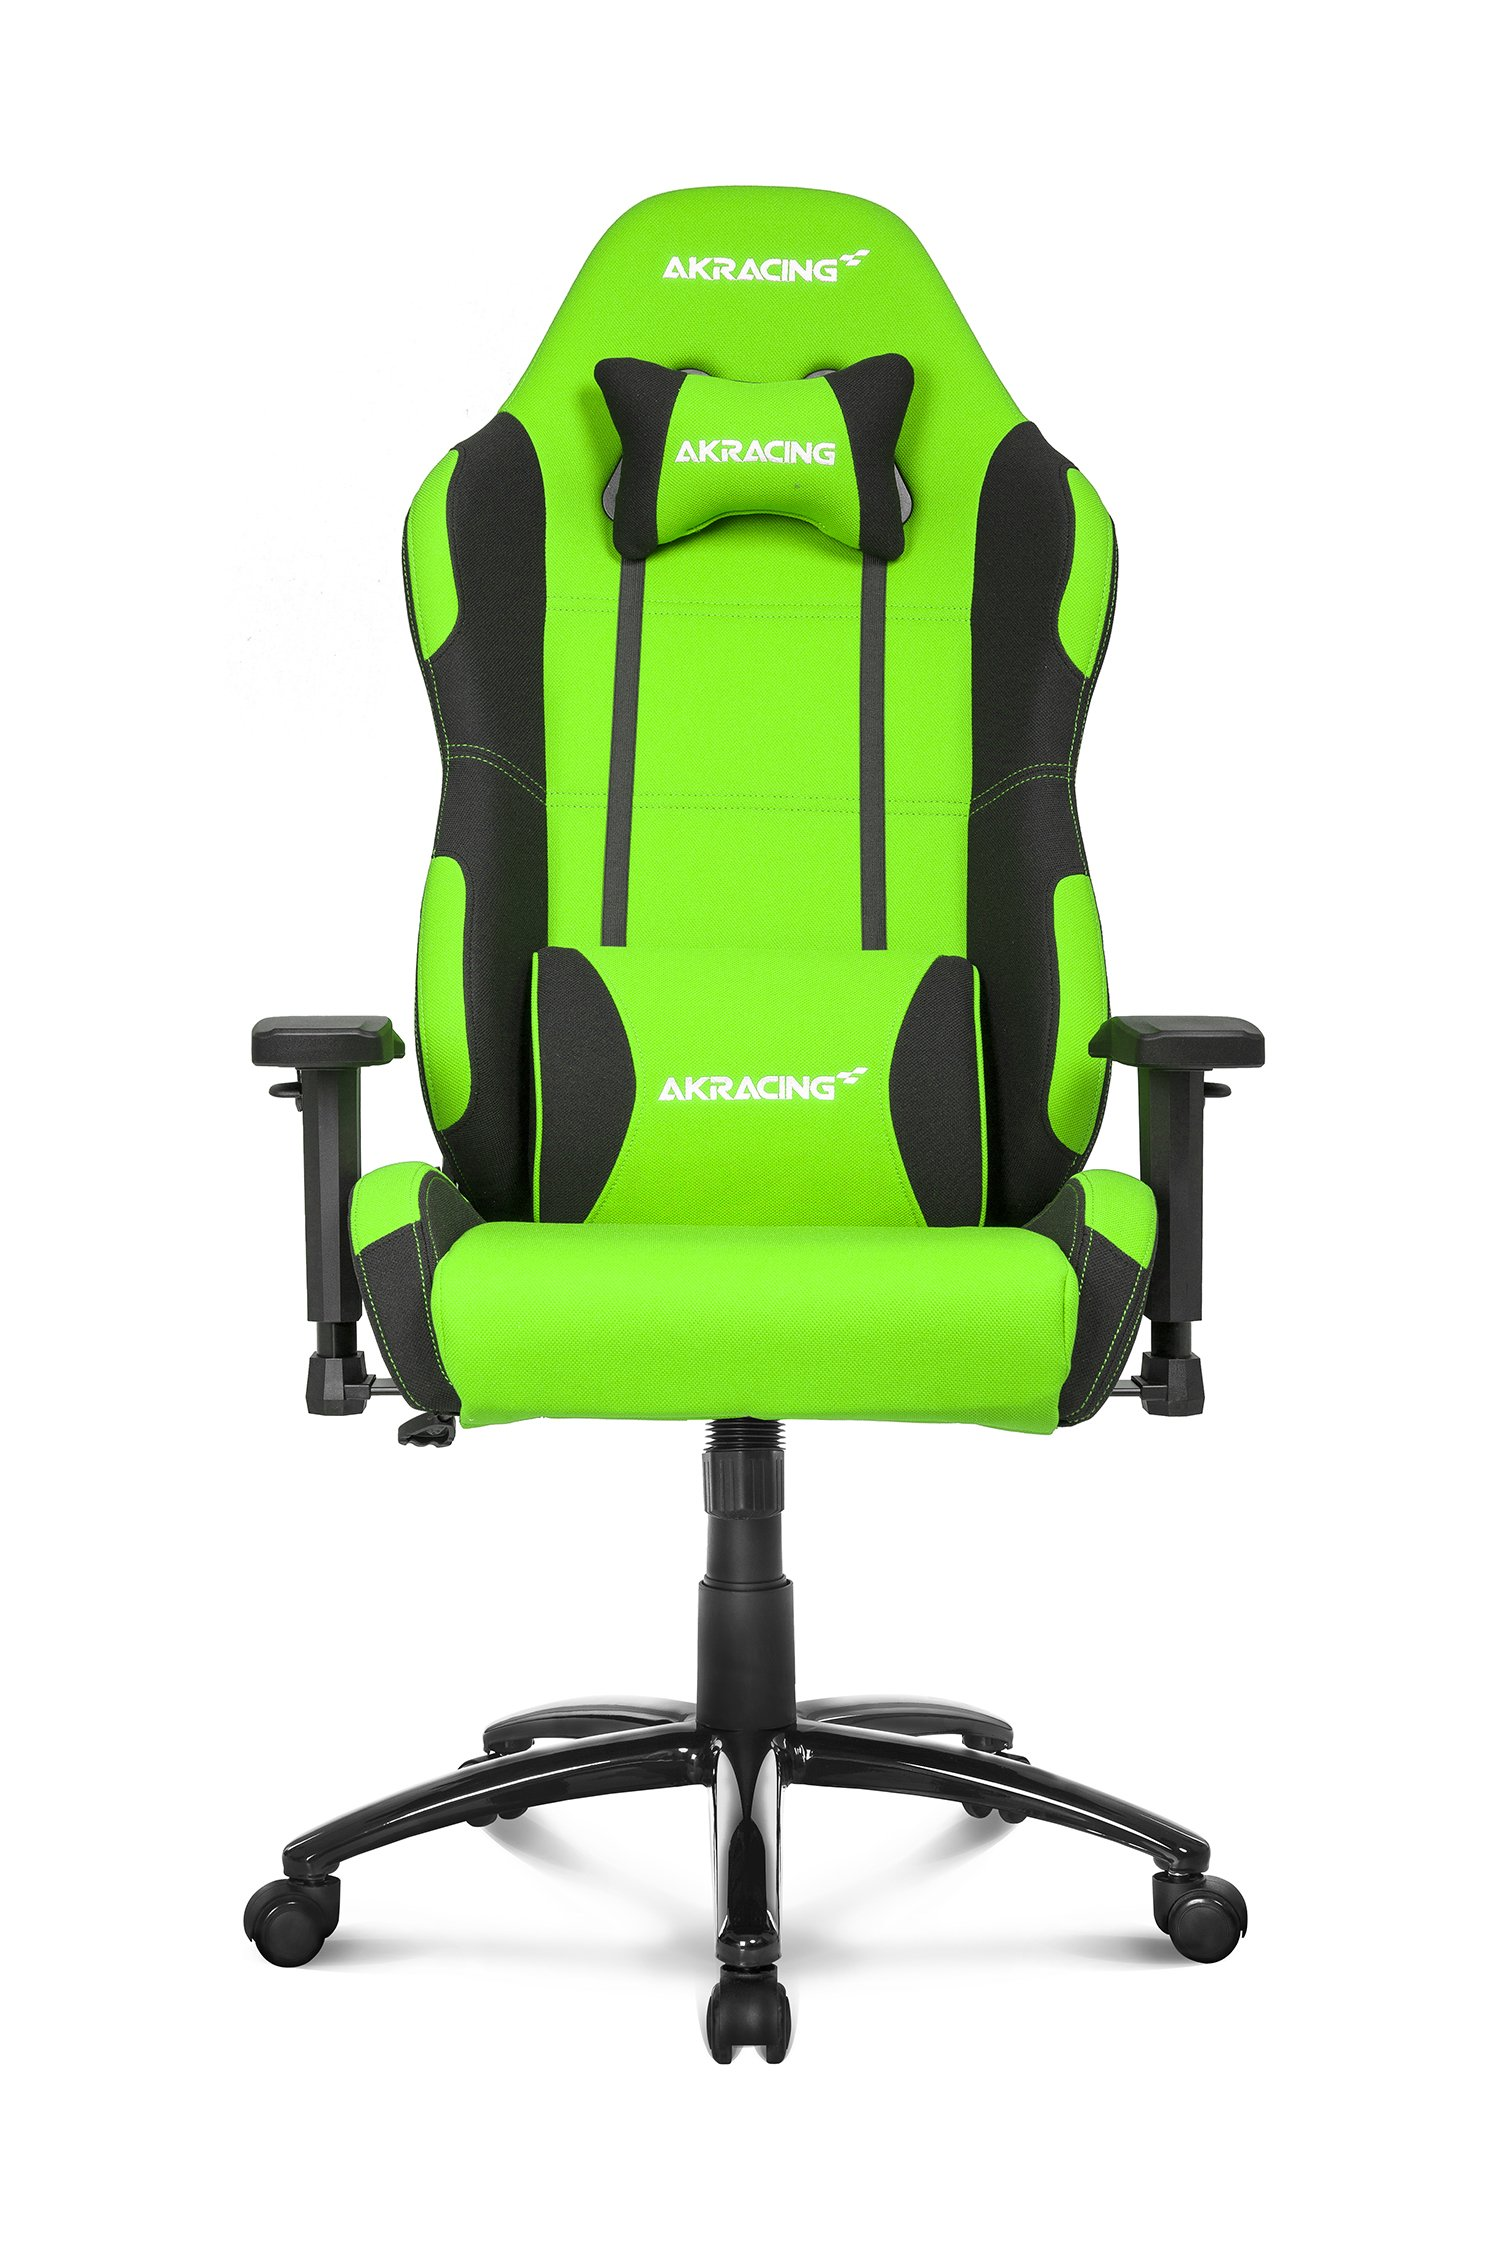 AKRacing Prime Series Premium Gaming Chair with High Backrest, Recliner, Swivel, Tilt, Rocker and Seat Height Adjustment Mechanisms with 5/10 warranty Green